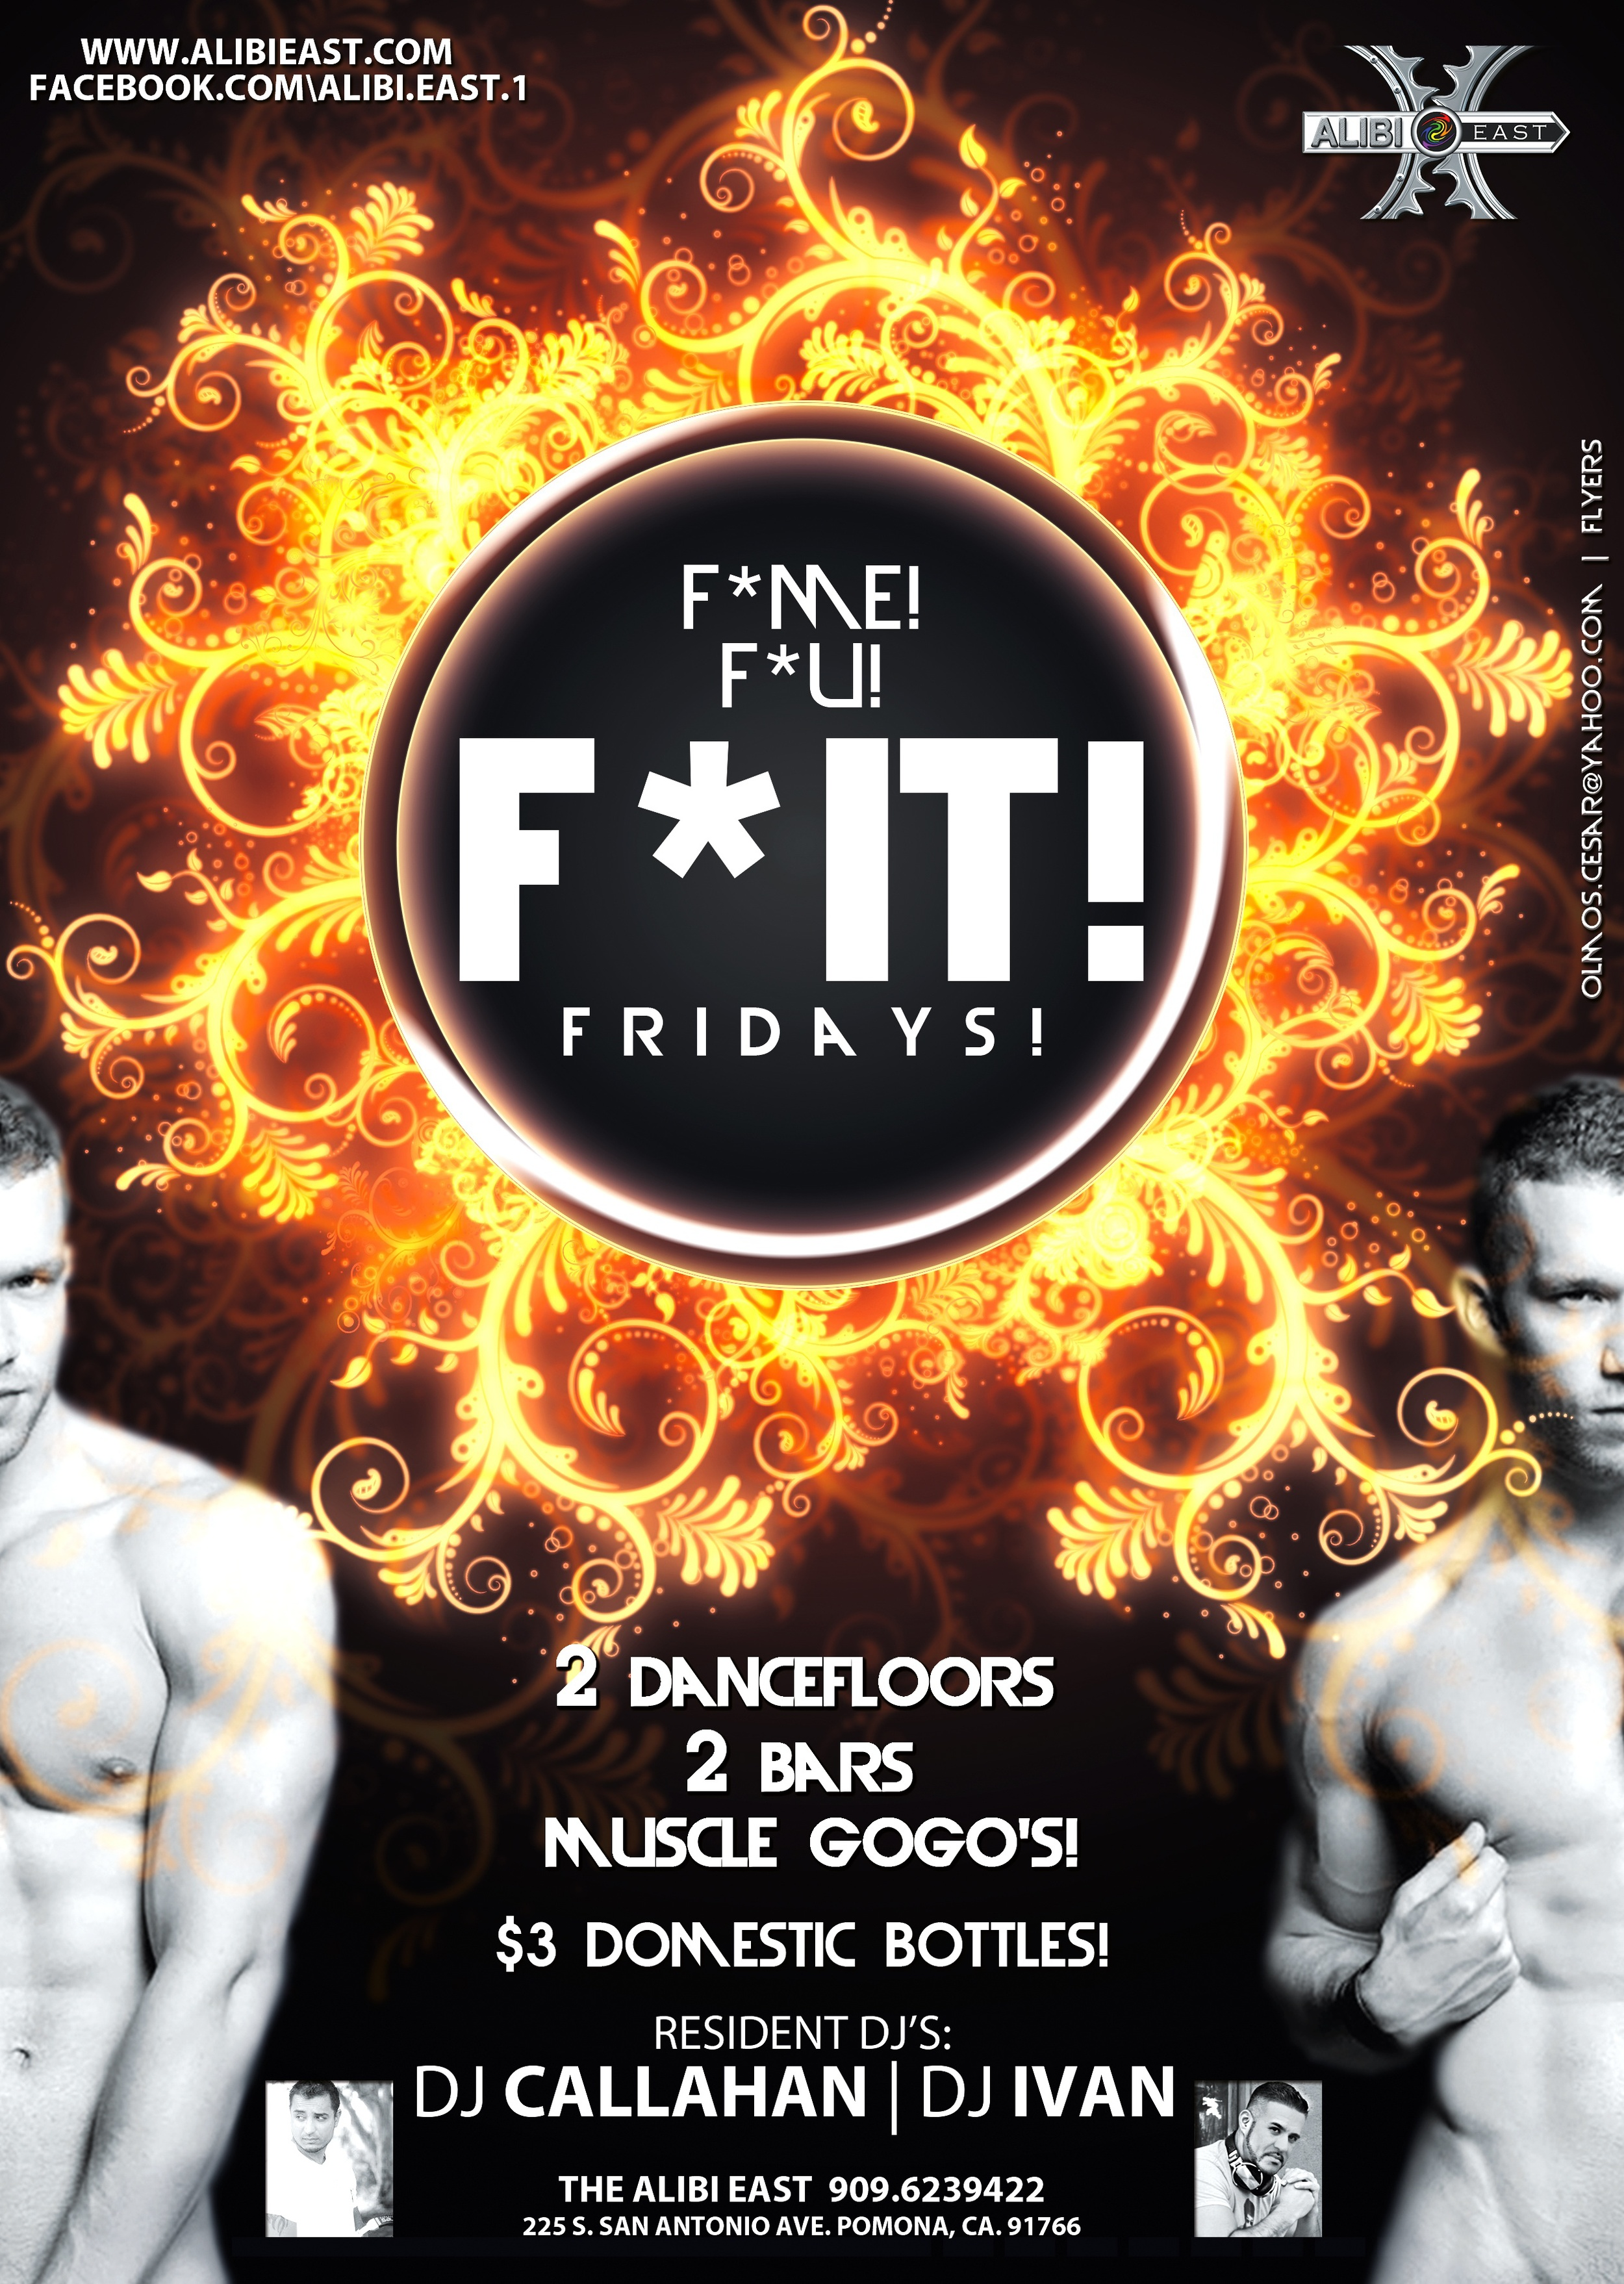 The week is over and we say F*IT!     DJ iVAN & DJ Callahan spin on two dancefloors!   Muscle GoGo's!  Afterhours!  HOT MEN & some SEXY WOMEN too!       Come start your weekend the right way!